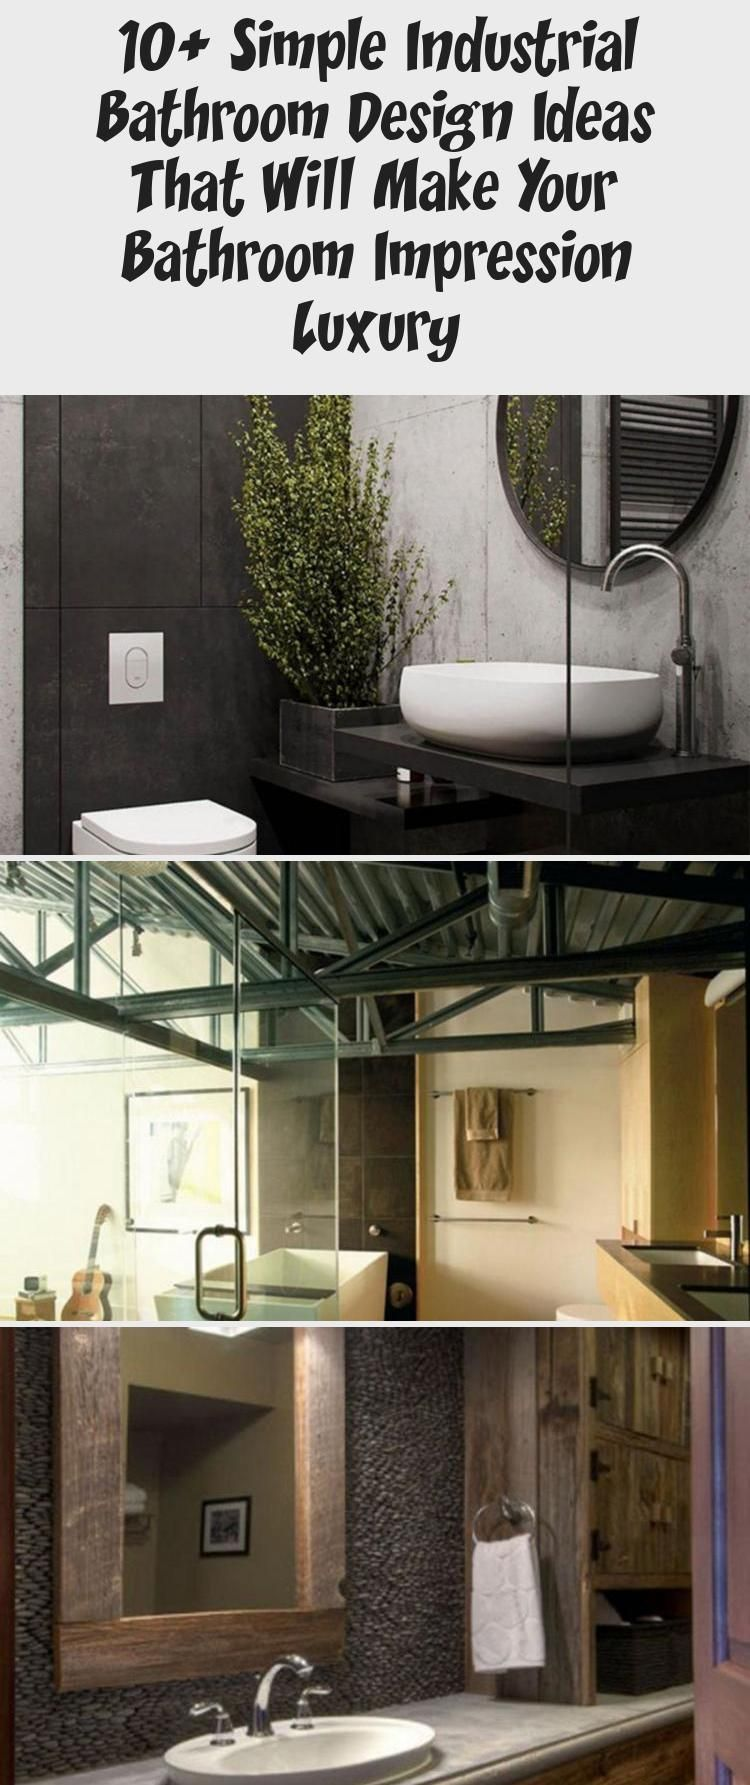 10 Simple Industrial Bathroom Design Ideas That Will Make Your Bathroom Impression Luxury In 2020 Industrial Bathroom Design Bathroom Design Luxury House Designs